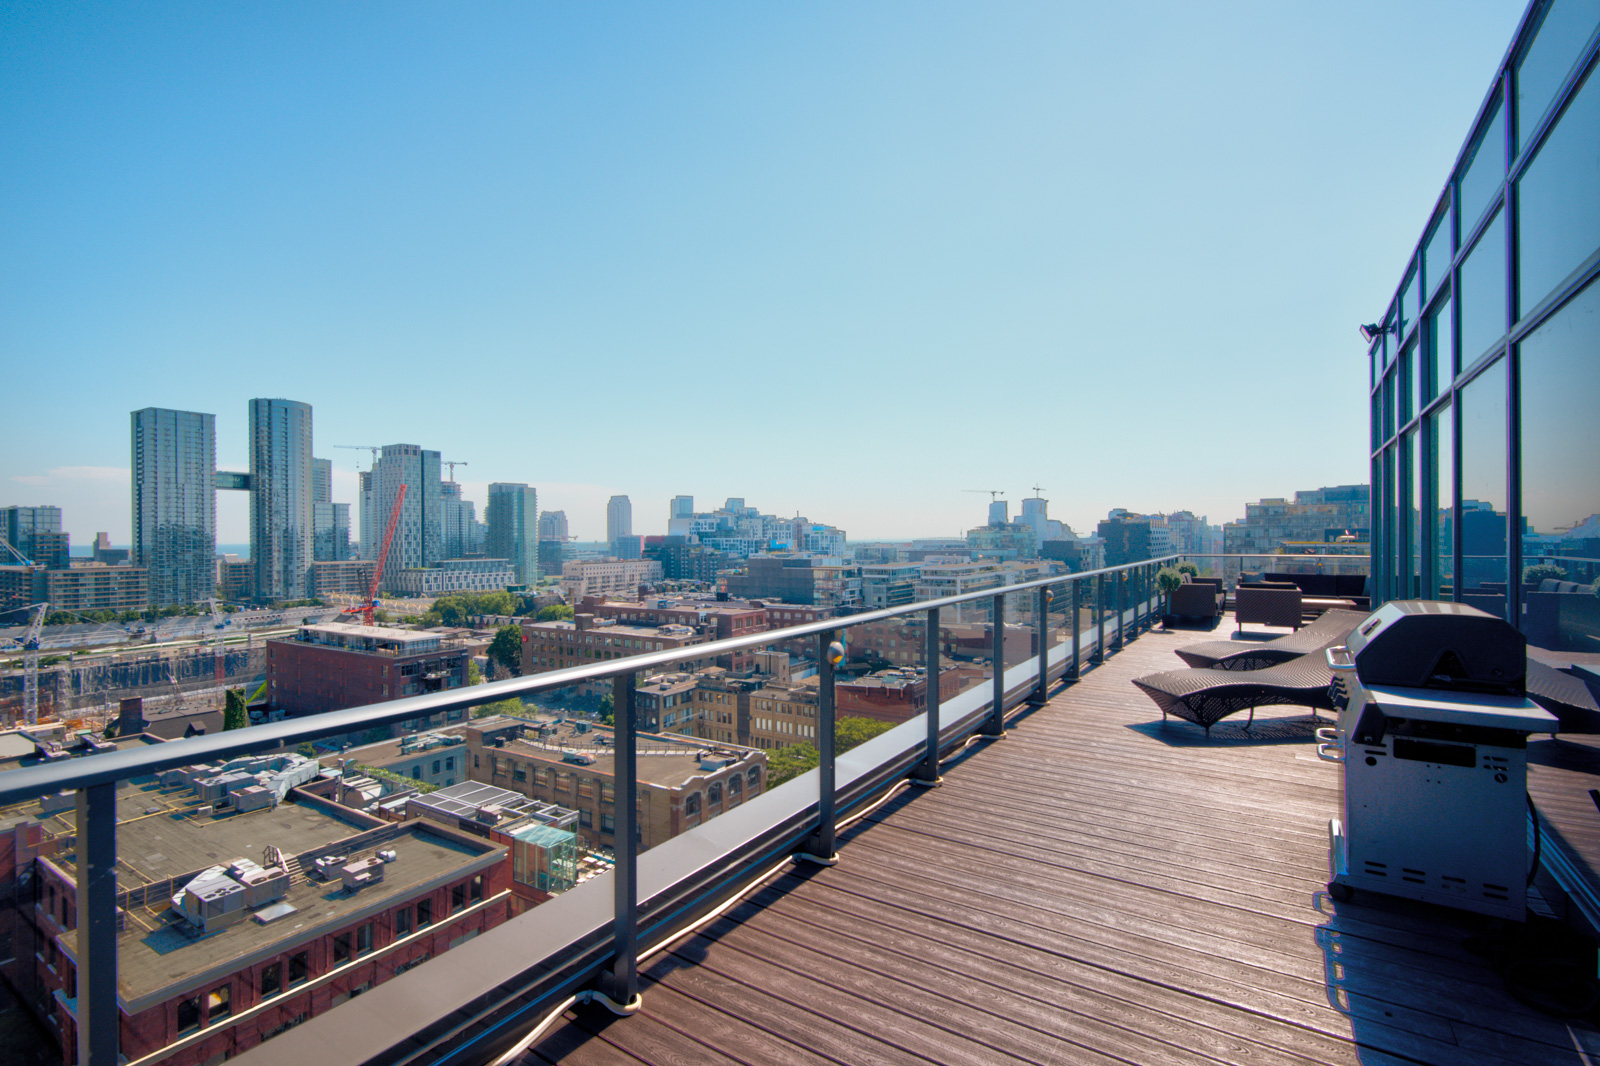 BBQ and lounge chairs with view of Toronto from terrace of Victory Lofts Penthouse Suite in 478 King St W Toronto.